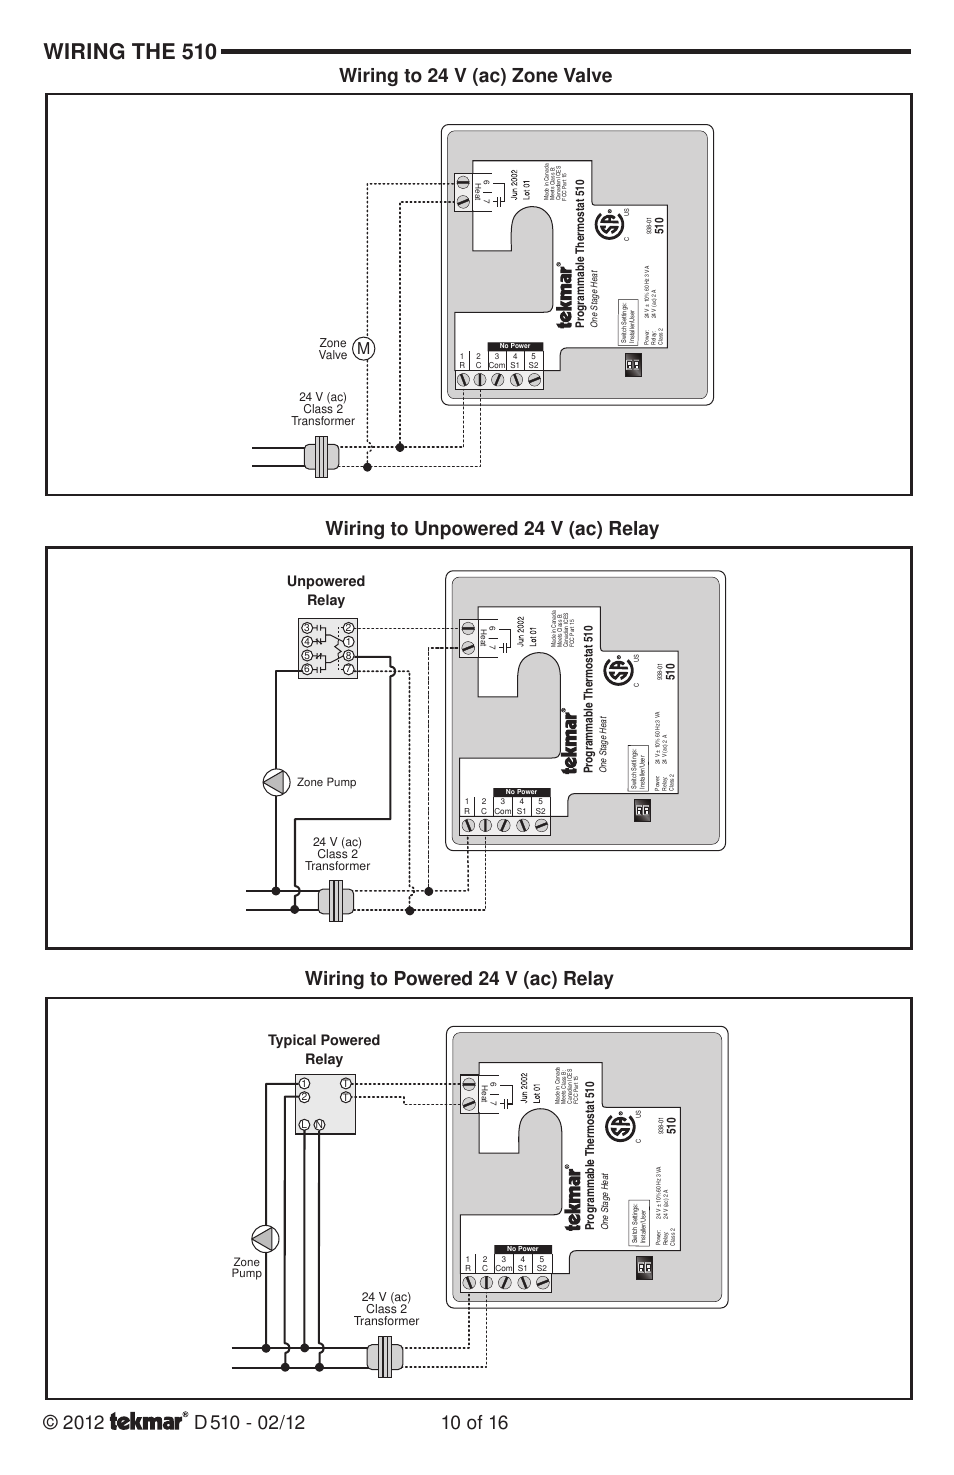 wiring the 510, wiring to powered 24 v (ac) relay ... wiring diagram 1971 honda 750 four